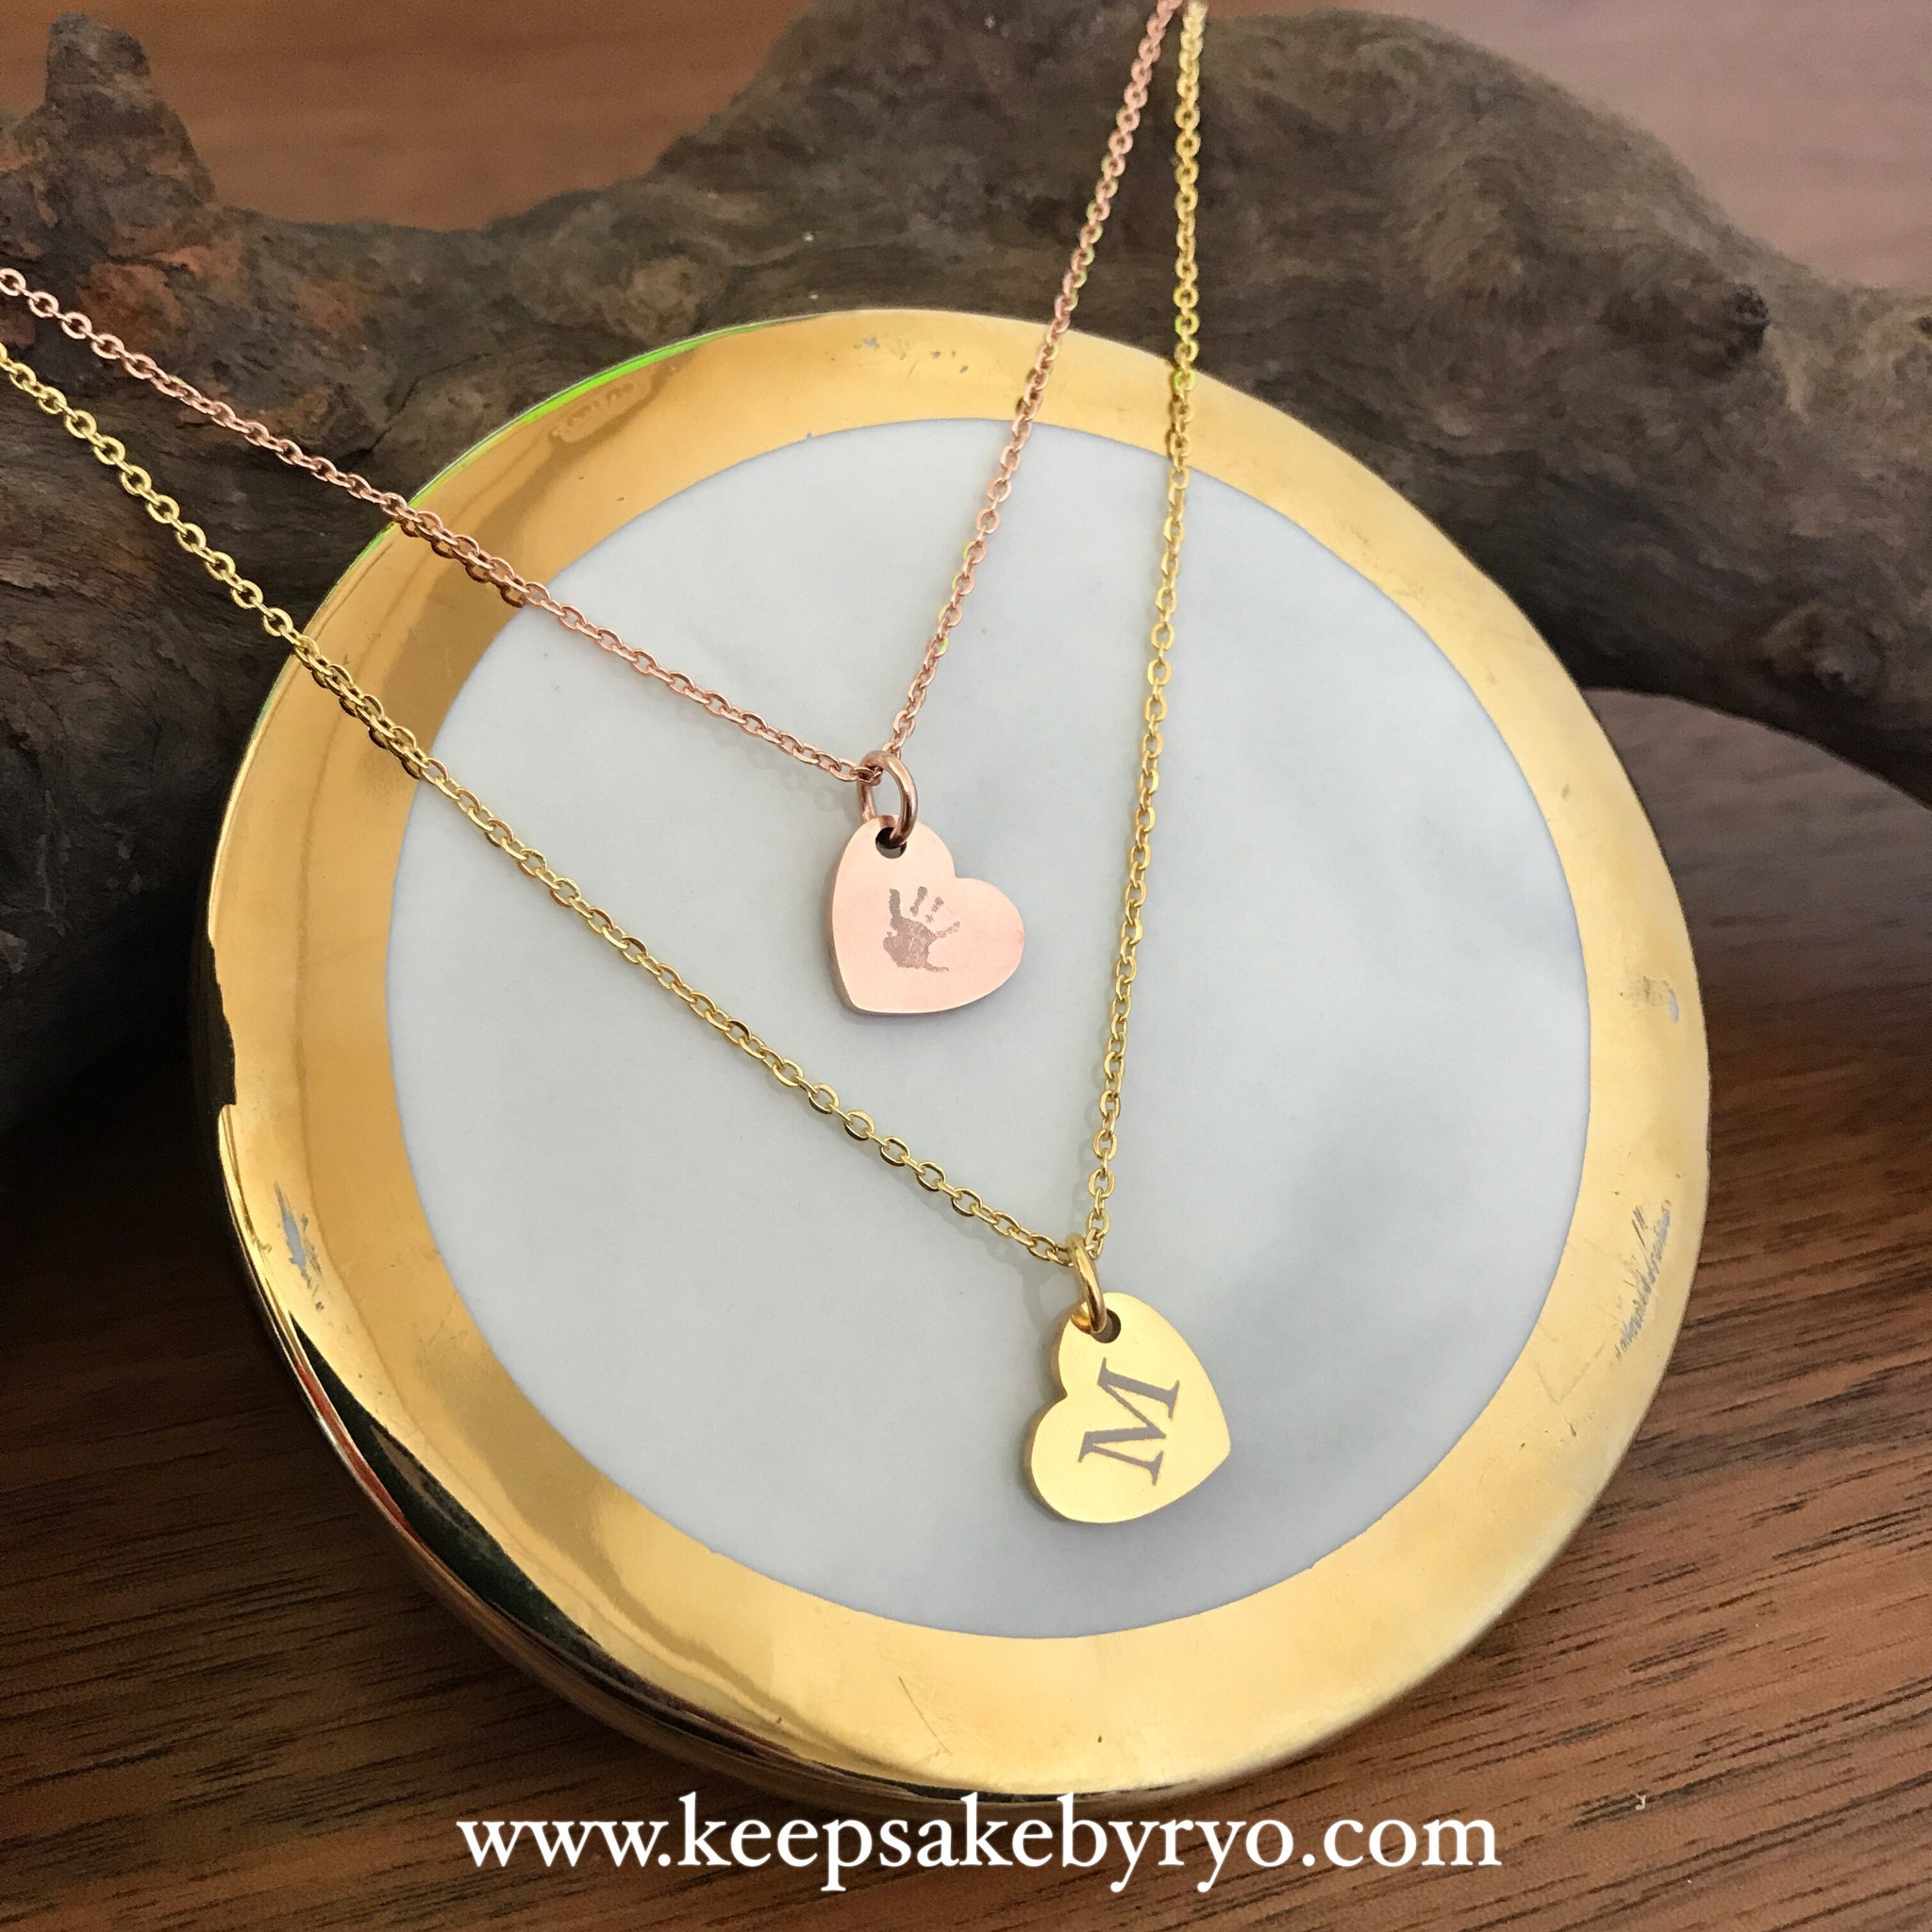 da4ba6ba2 Engraved by Ryo: Trio of Hearts Necklace, Double Sided with Initial & Hand  Or Foot Print